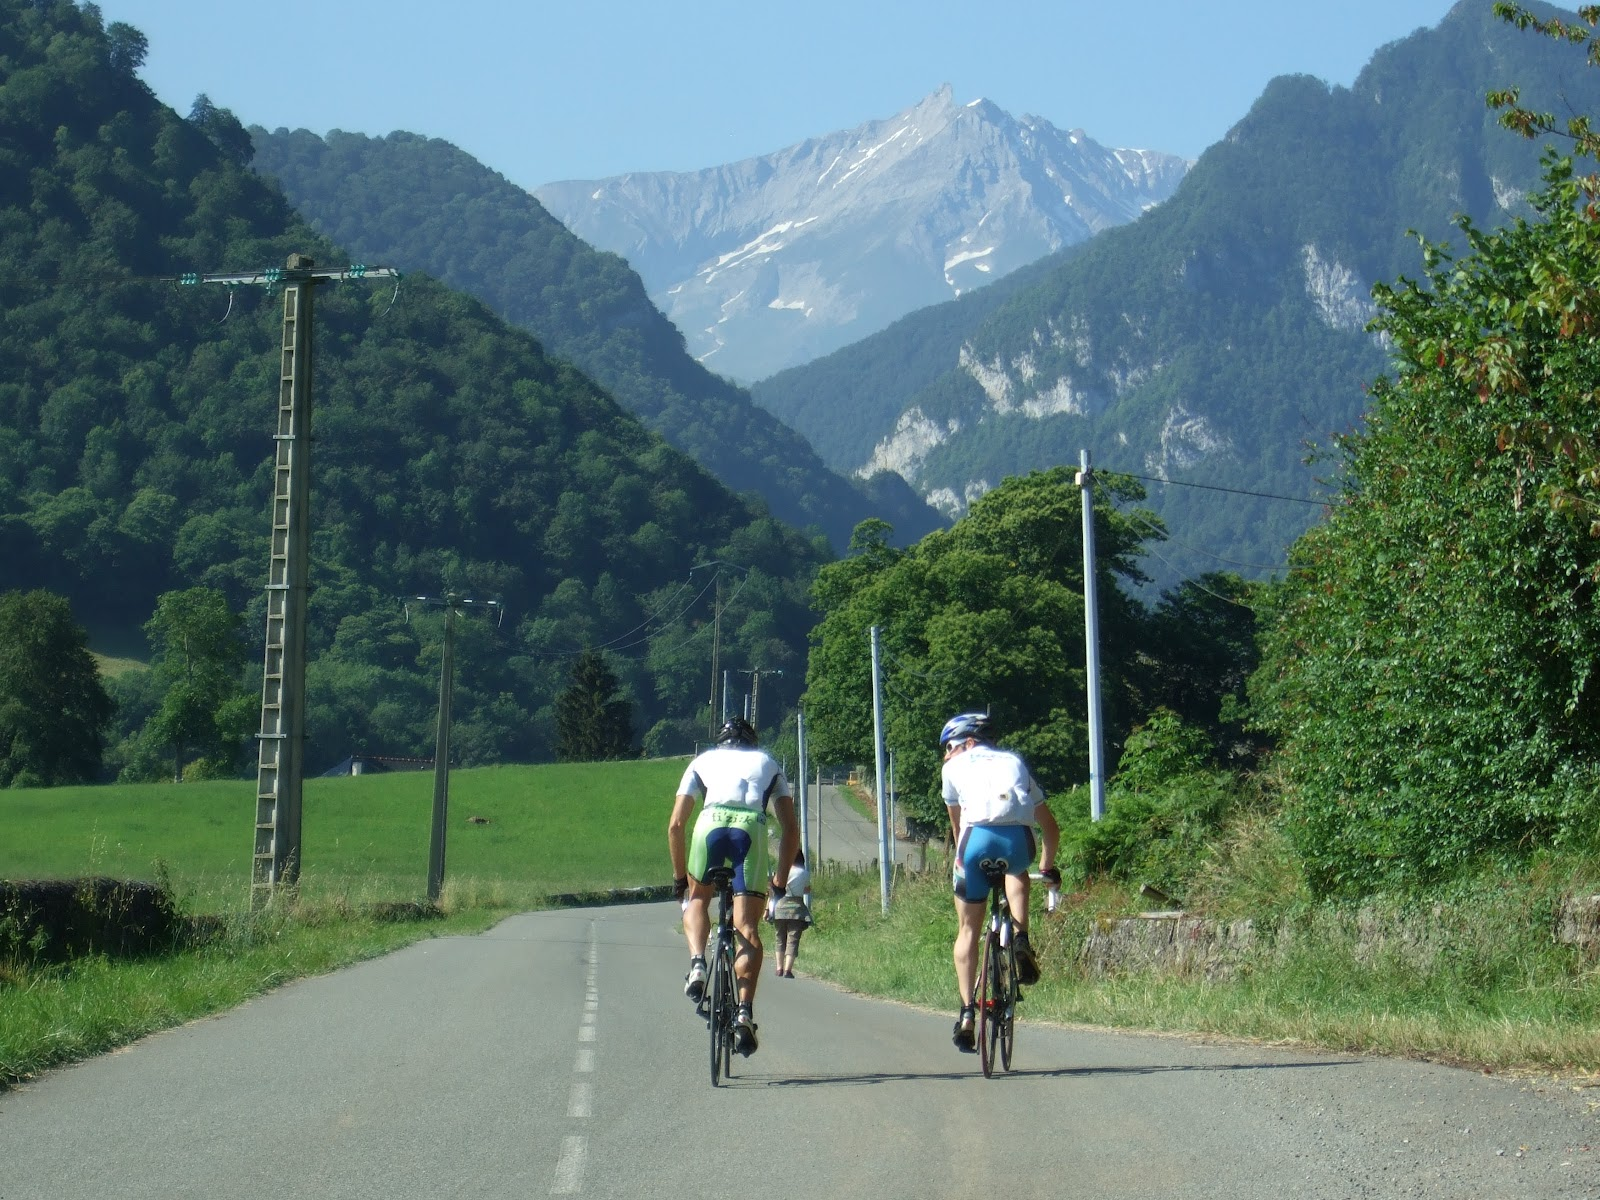 Col du Soulor from Ferrieres - cyclists riding on road